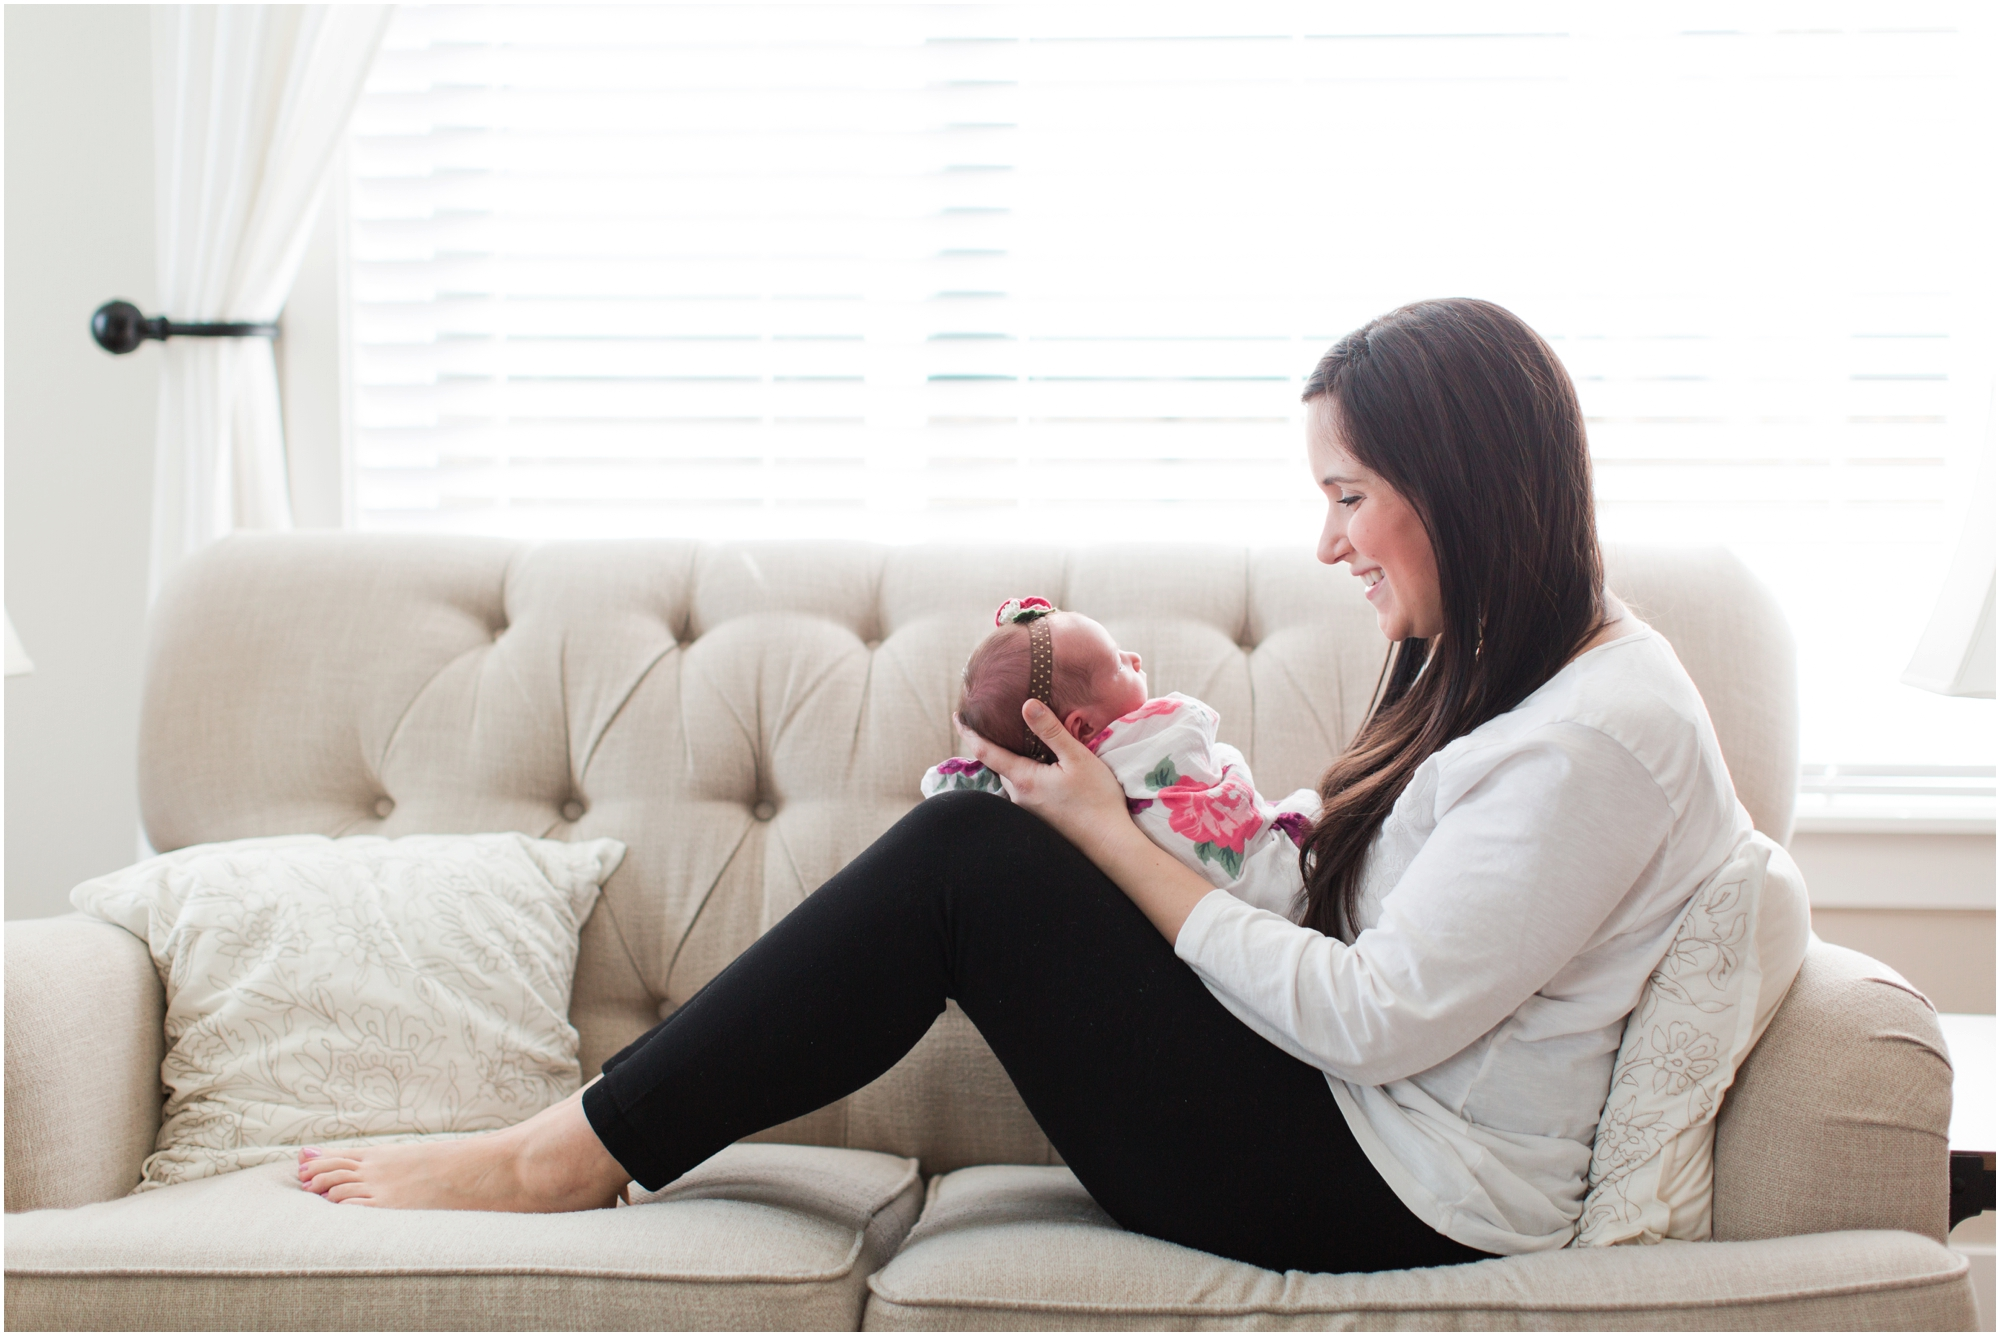 Lifestyle newborn photos by Briana Calderon Photography based in the Greater Seattle & Tacoma, WA_1068.jpg